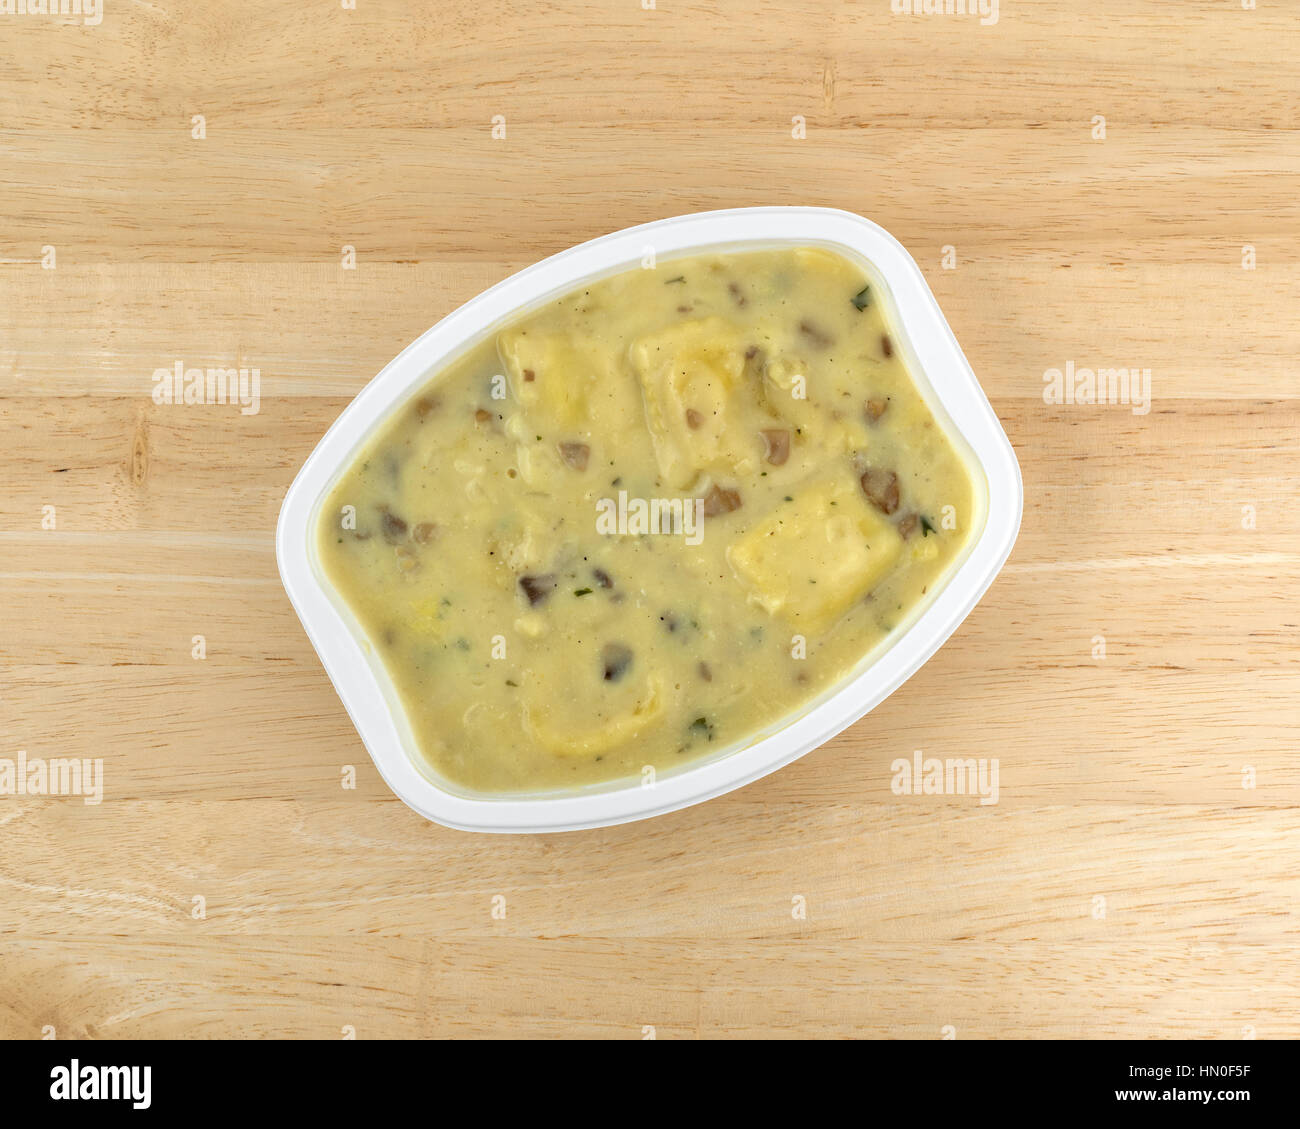 Top view of a ravioli in a cheese and mushroom sauce TV dinner on a wood table top. - Stock Image